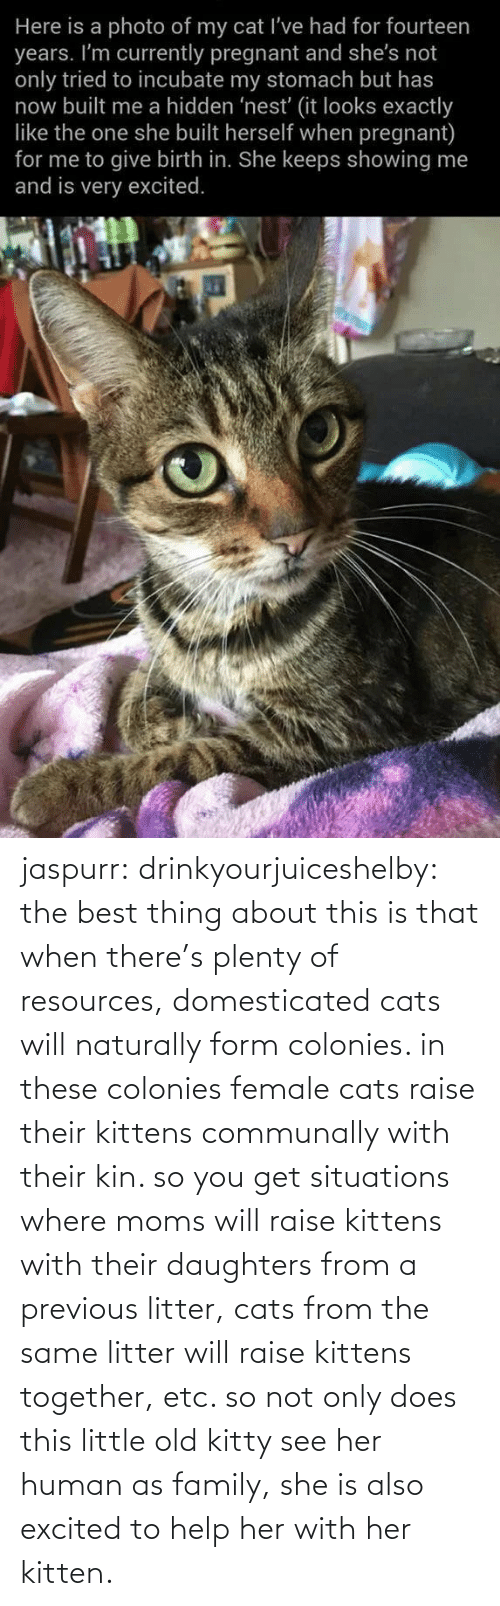 the best: jaspurr:  drinkyourjuiceshelby:    the best thing about this is that when there's plenty of resources, domesticated cats will naturally form colonies. in these colonies female cats raise their kittens communally with their kin. so you get situations where moms will raise kittens with their daughters from a previous litter, cats from the same litter will raise kittens together, etc. so not only does this little old kitty see her human as family, she is also excited to help her with her kitten.